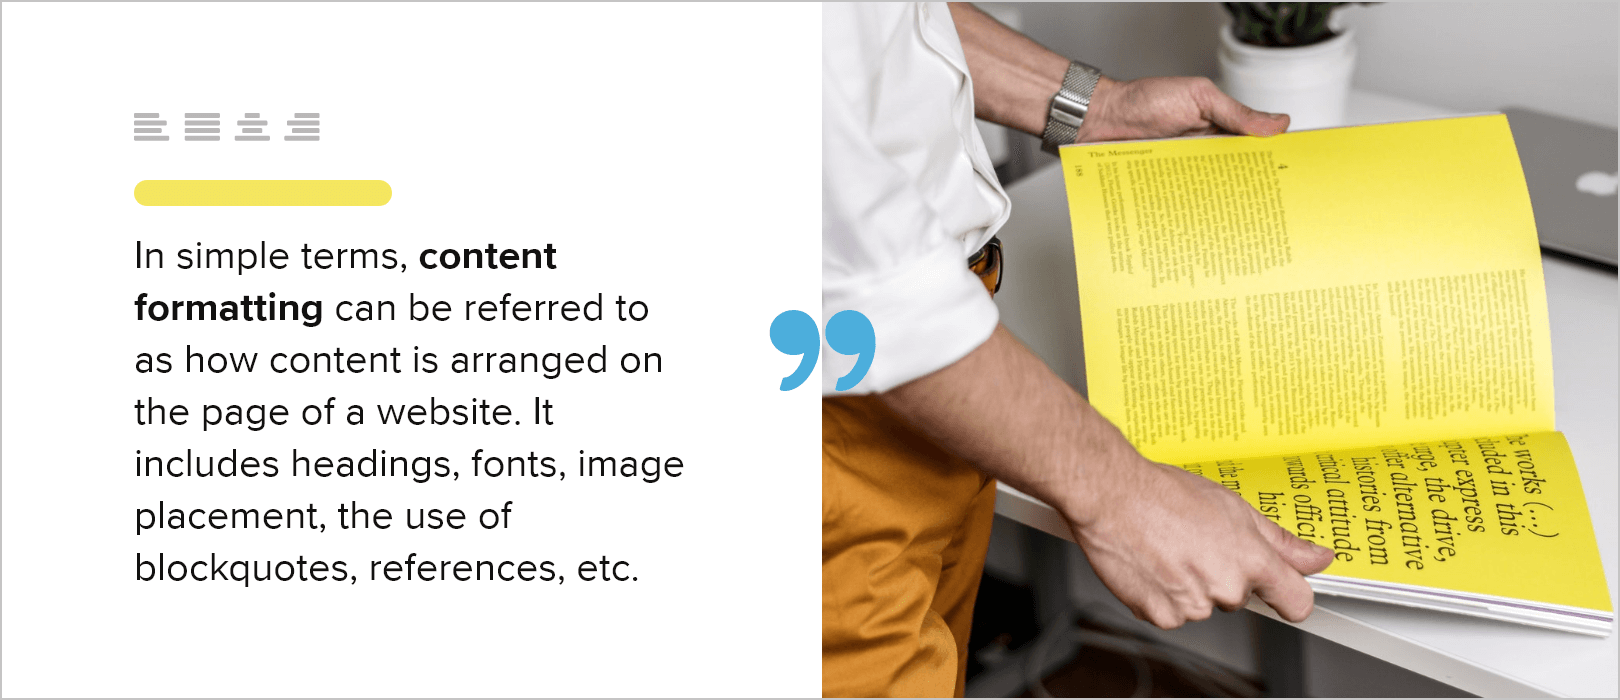 content-formatting-meaning